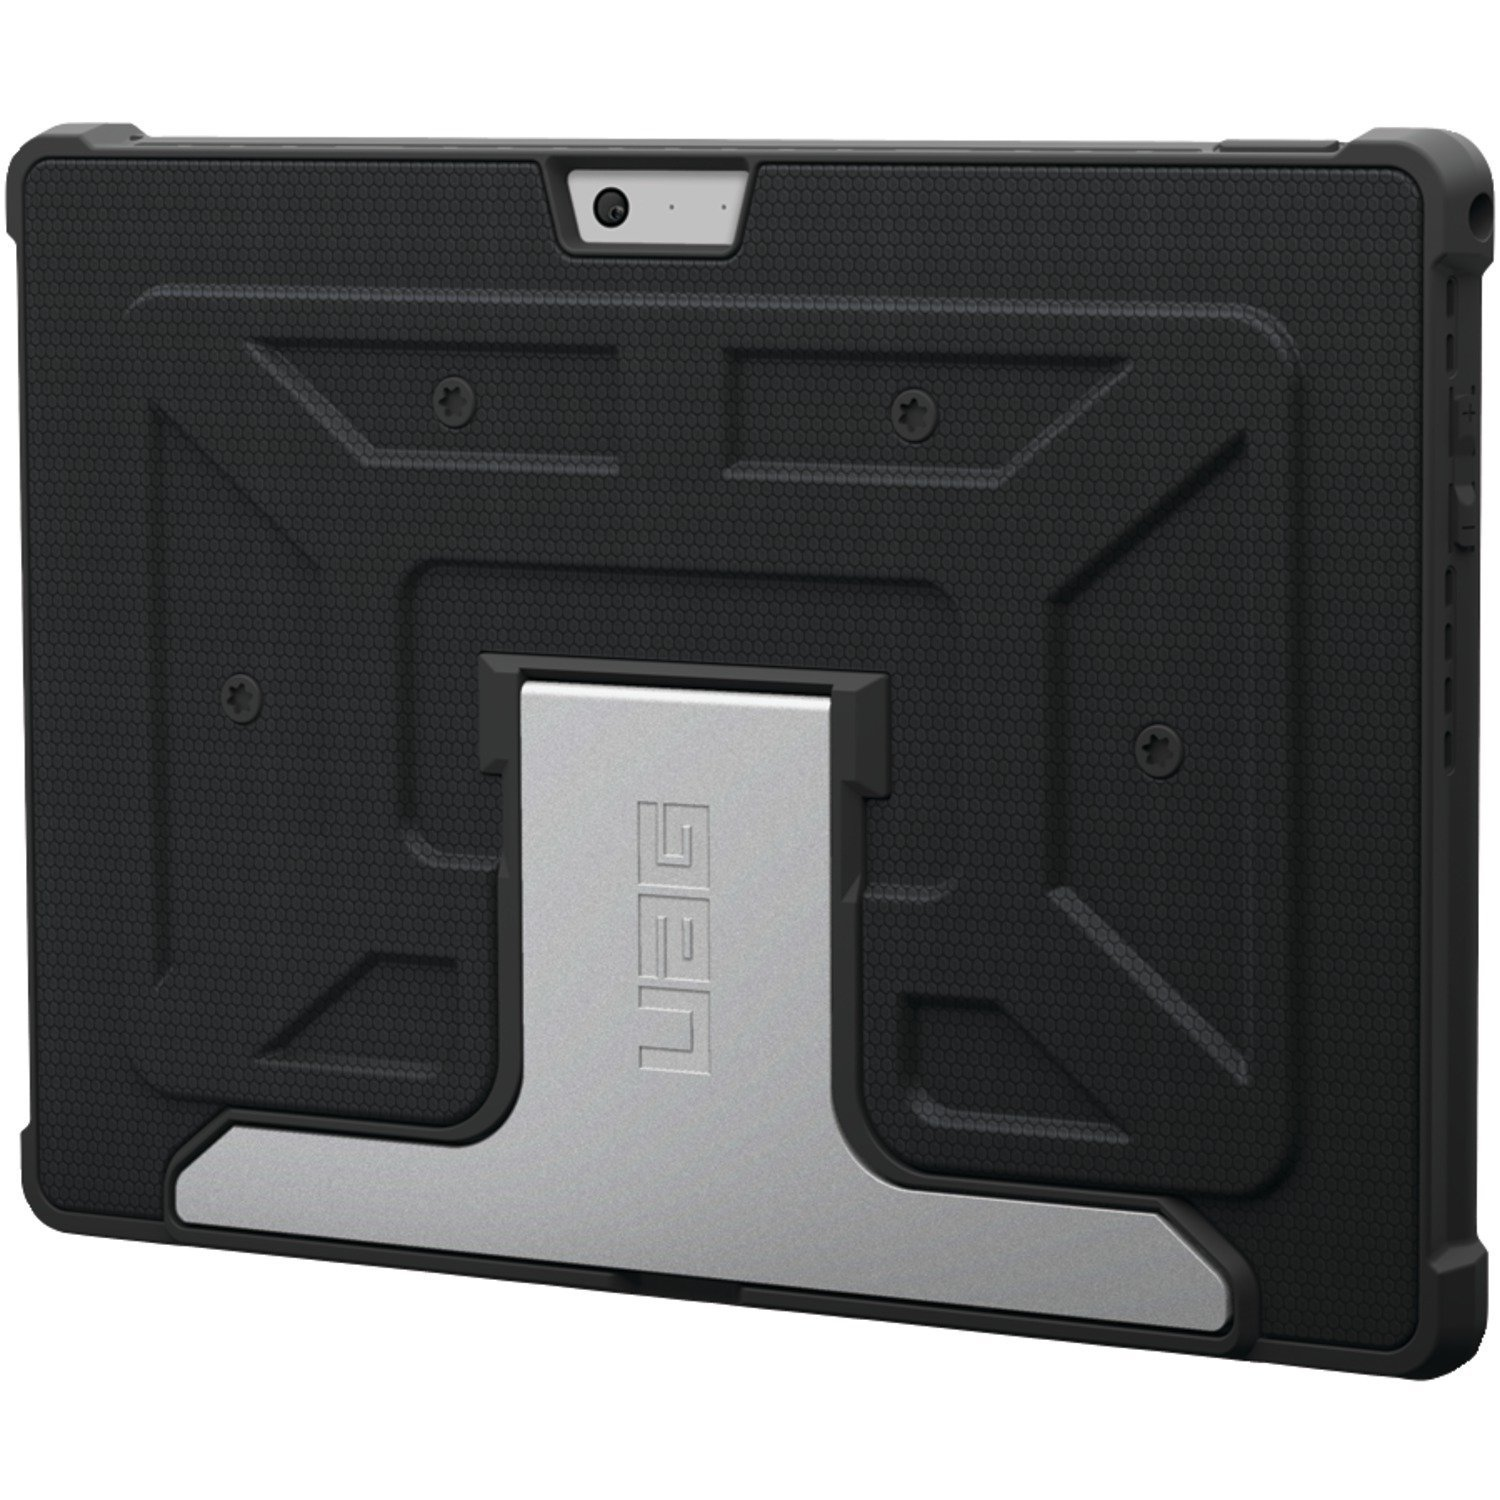 Top 10 microsoft surface pro 3 cases covers best microsoft surface pro - Amazon Com Uag Microsoft Surface Pro 3 Feather Light Composite Black Aluminum Stand Military Drop Tested Case Computers Accessories